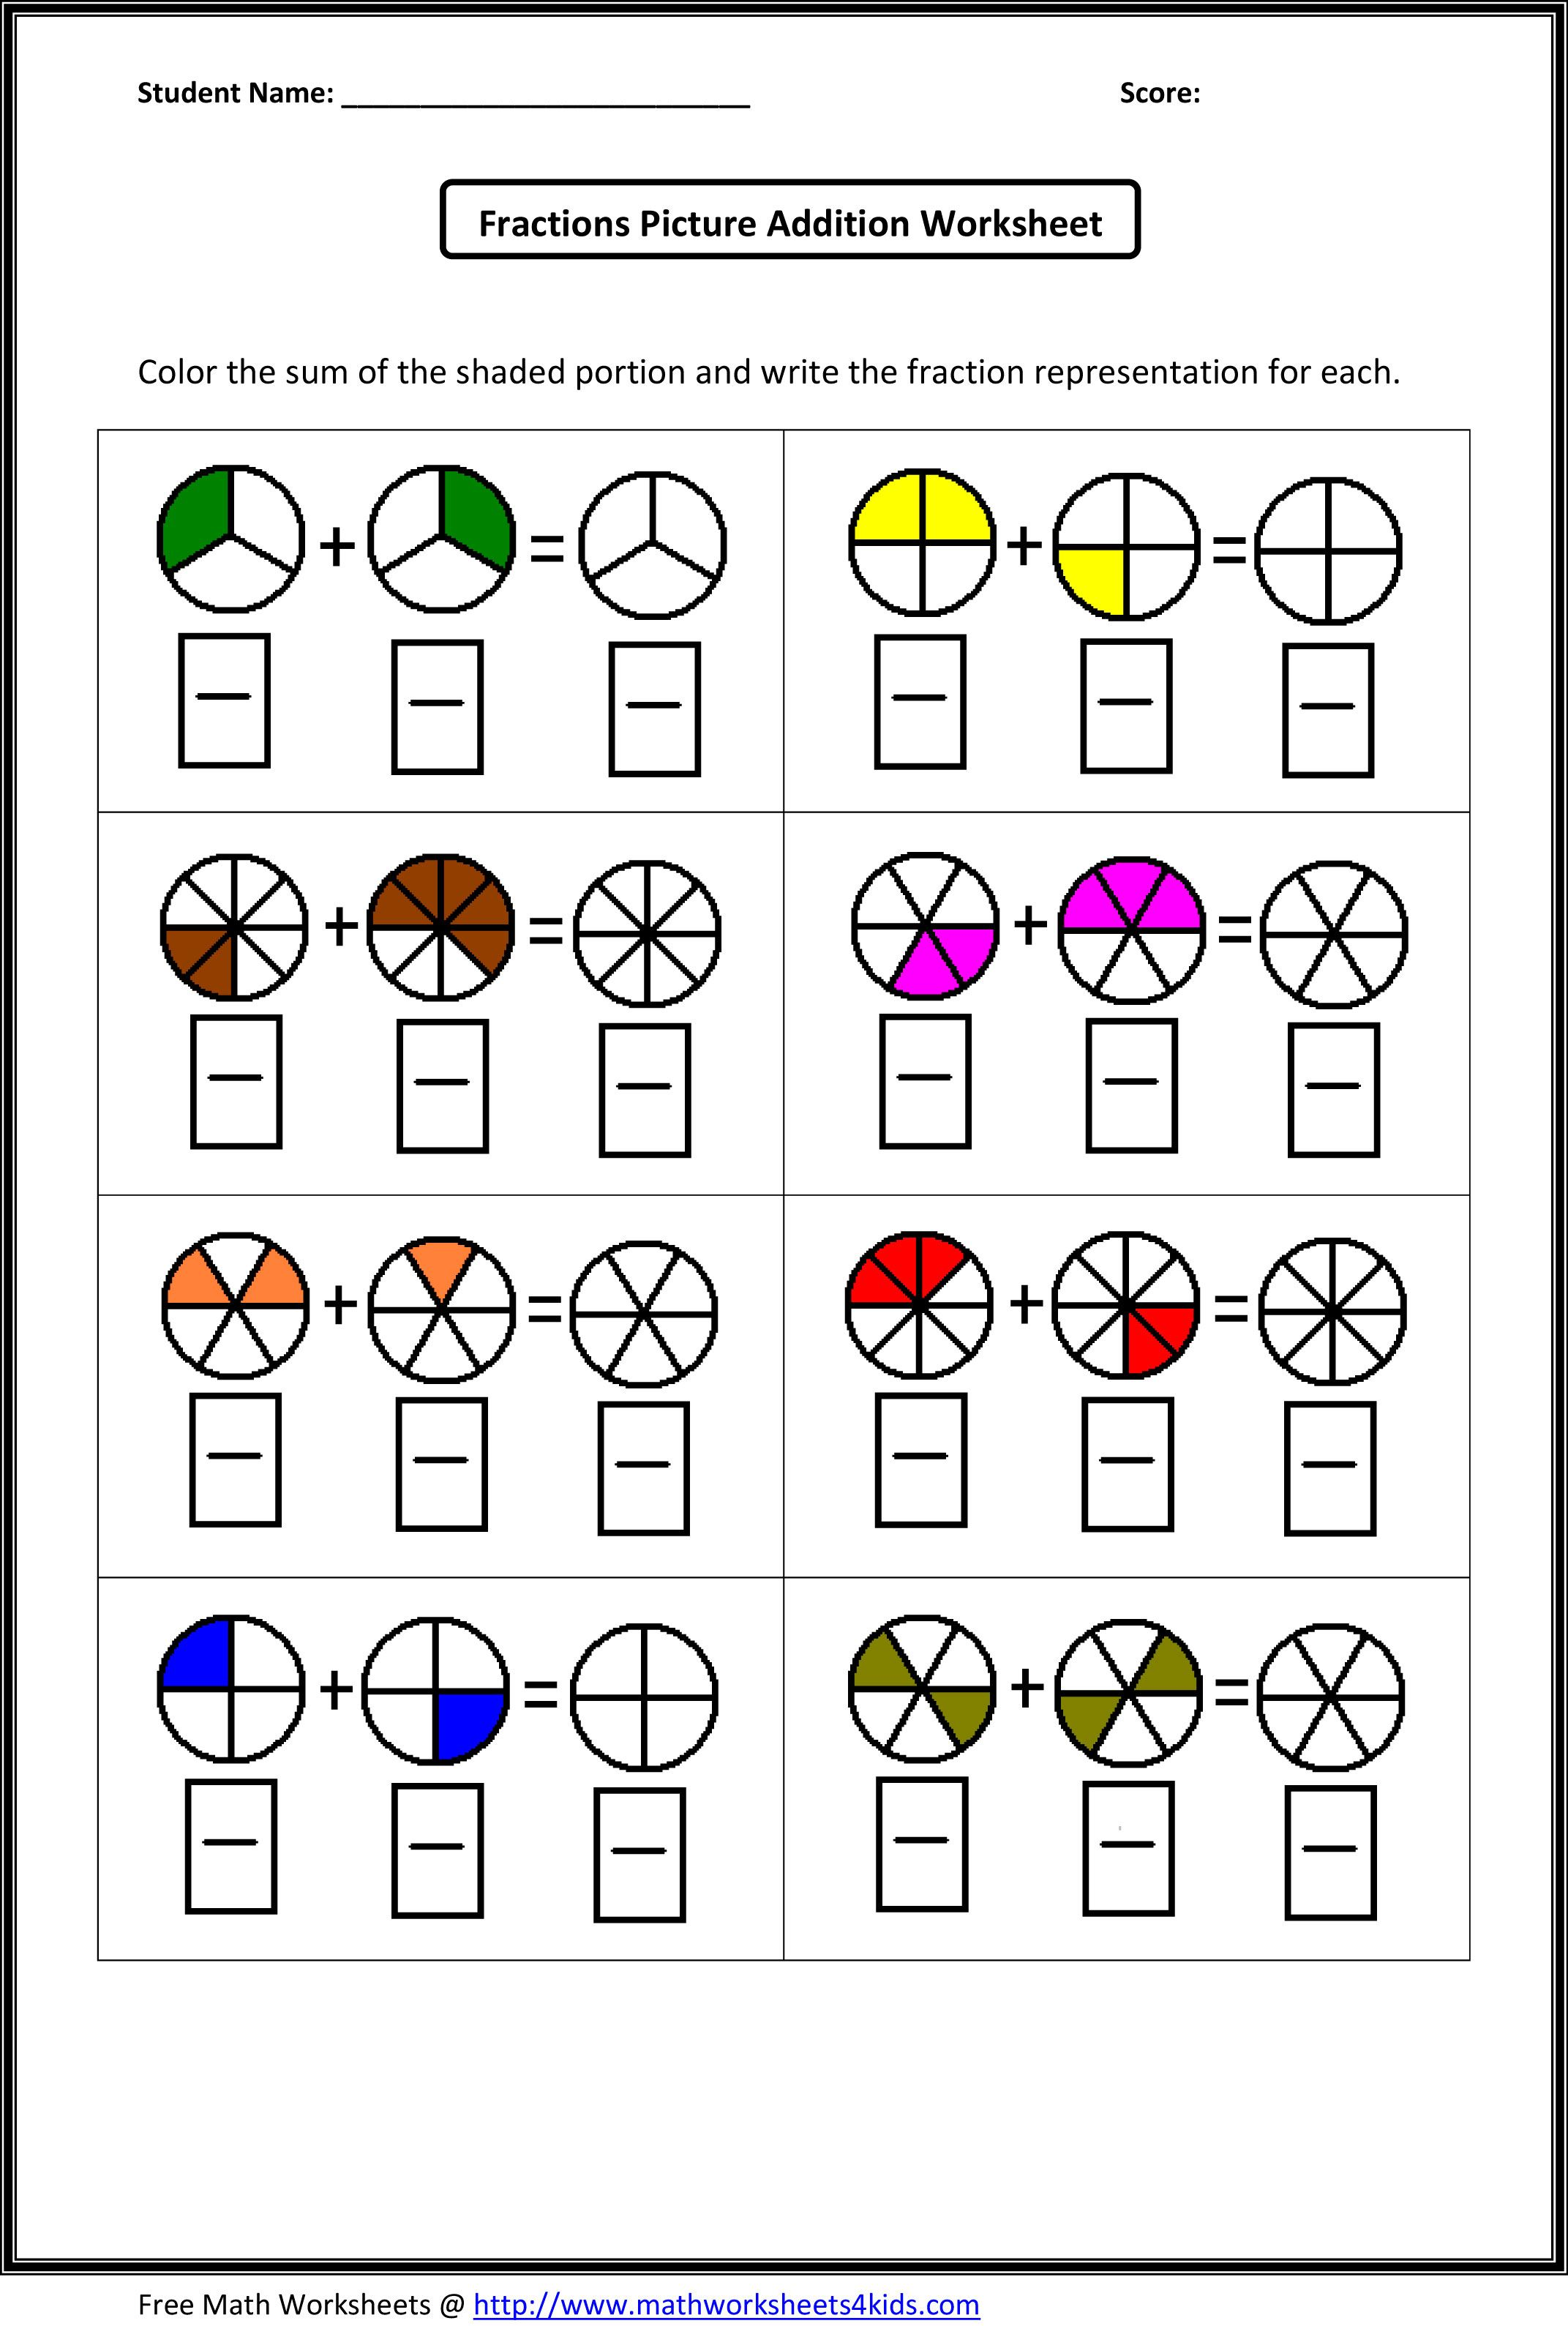 Fraction Addition Worksheets